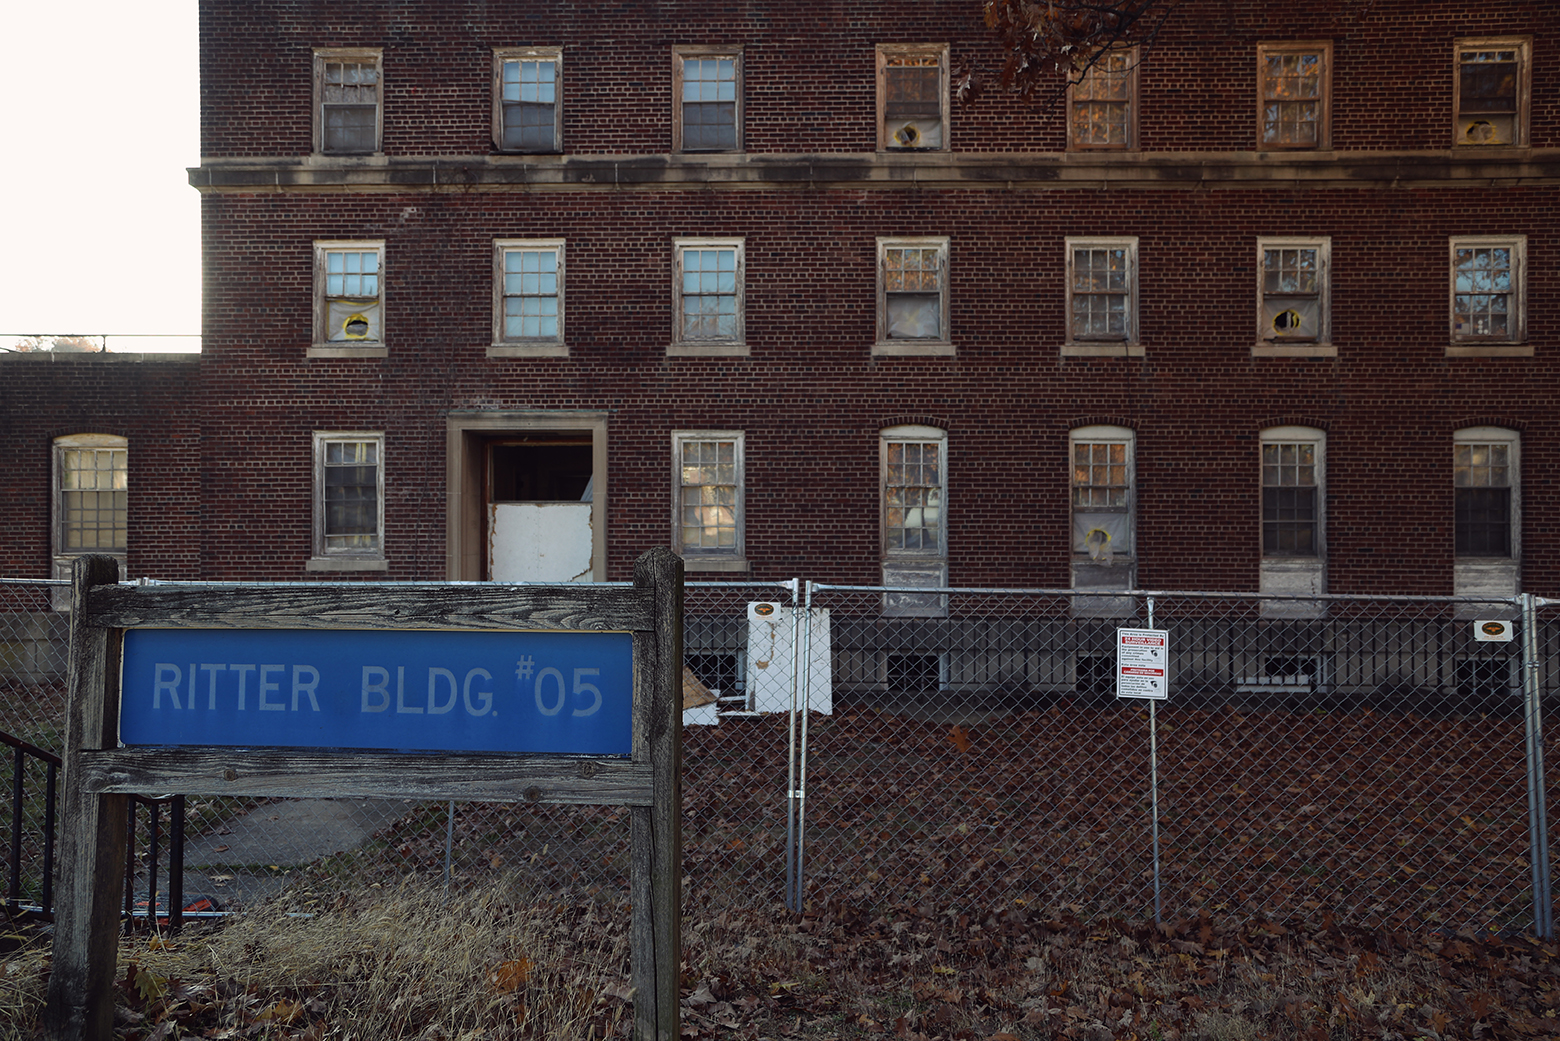 Allentown State Hospital - Ritter Building